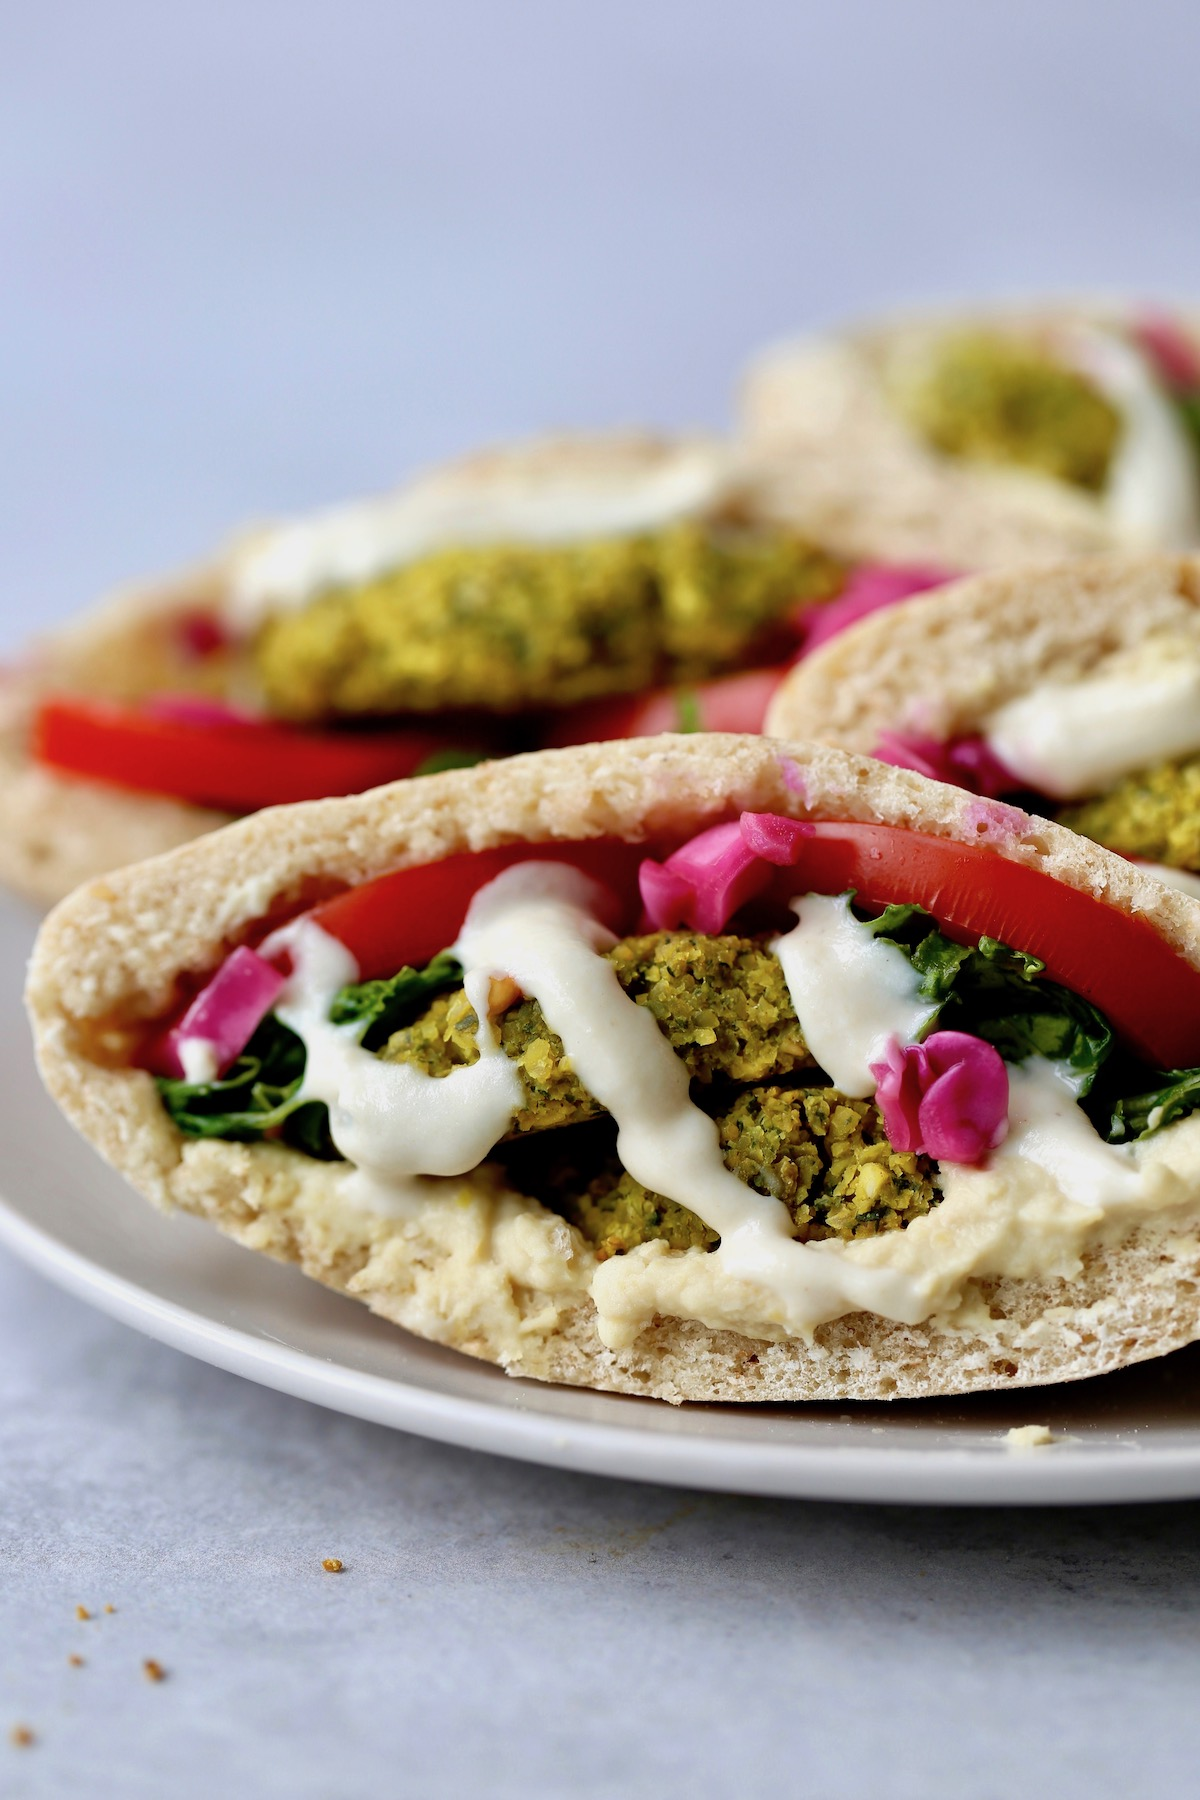 Falafel pitas stuffed with baked falafel, pickled red cabbage and lemon tahini dressing